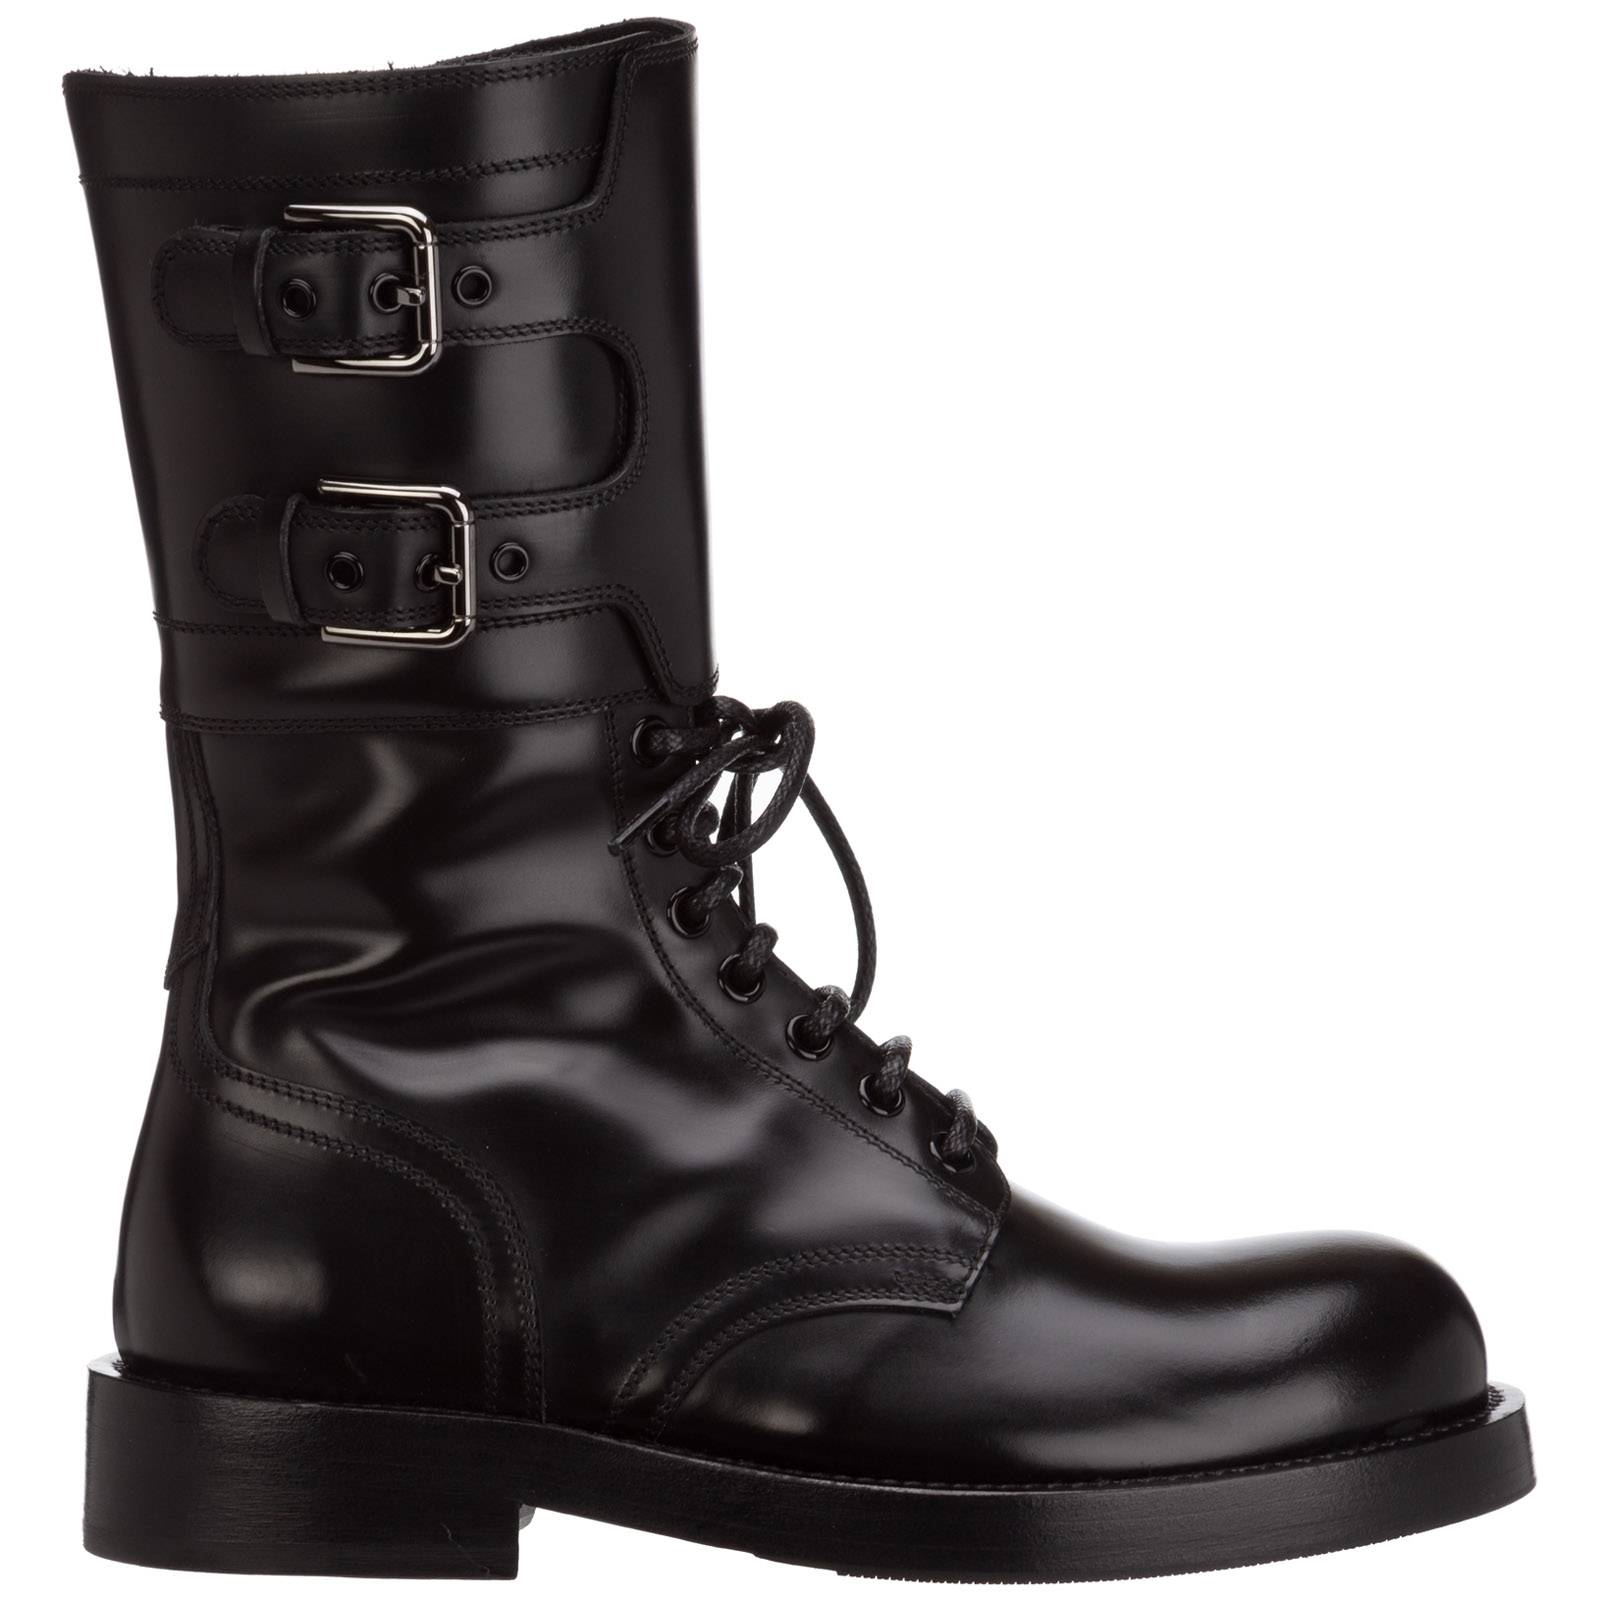 Dolce&Gabbana Women's leather ankle boots booties  - Women - Black - Size: 40